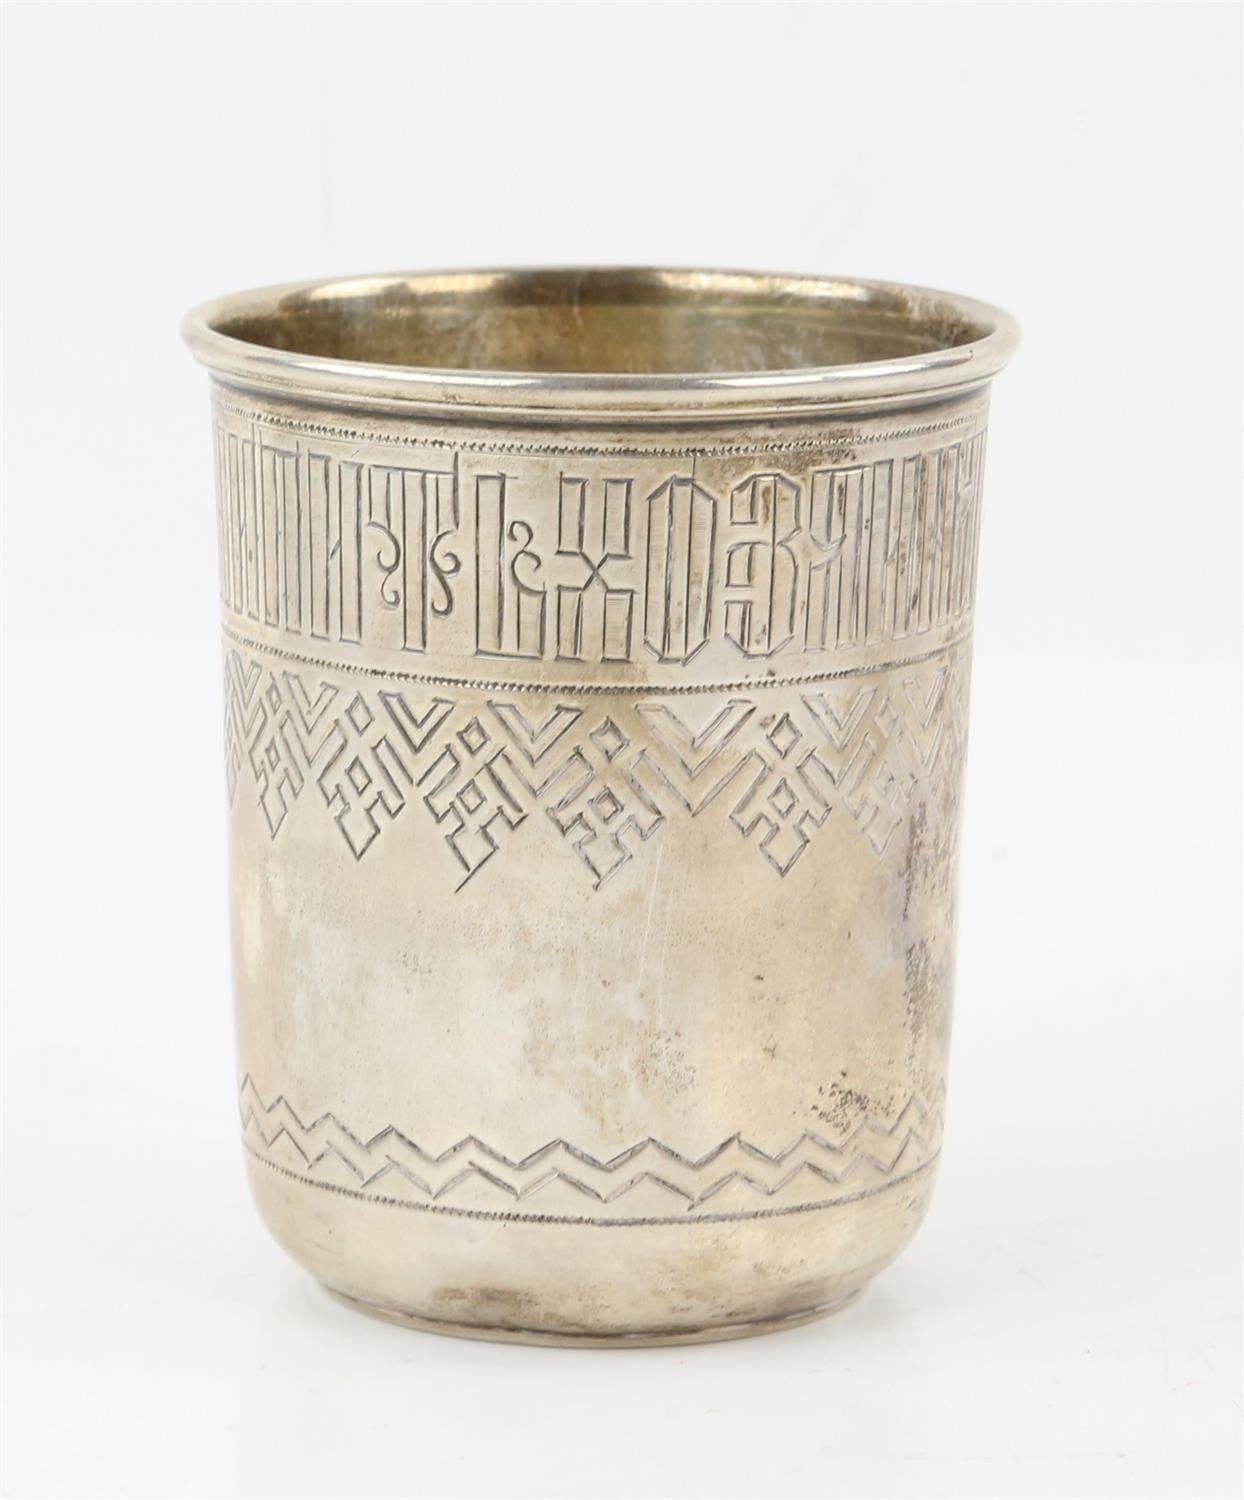 19th century Russian silver beaker with engraved decoration, maker's mark 'CNA', Moscow, 1883, 2. - Image 2 of 4